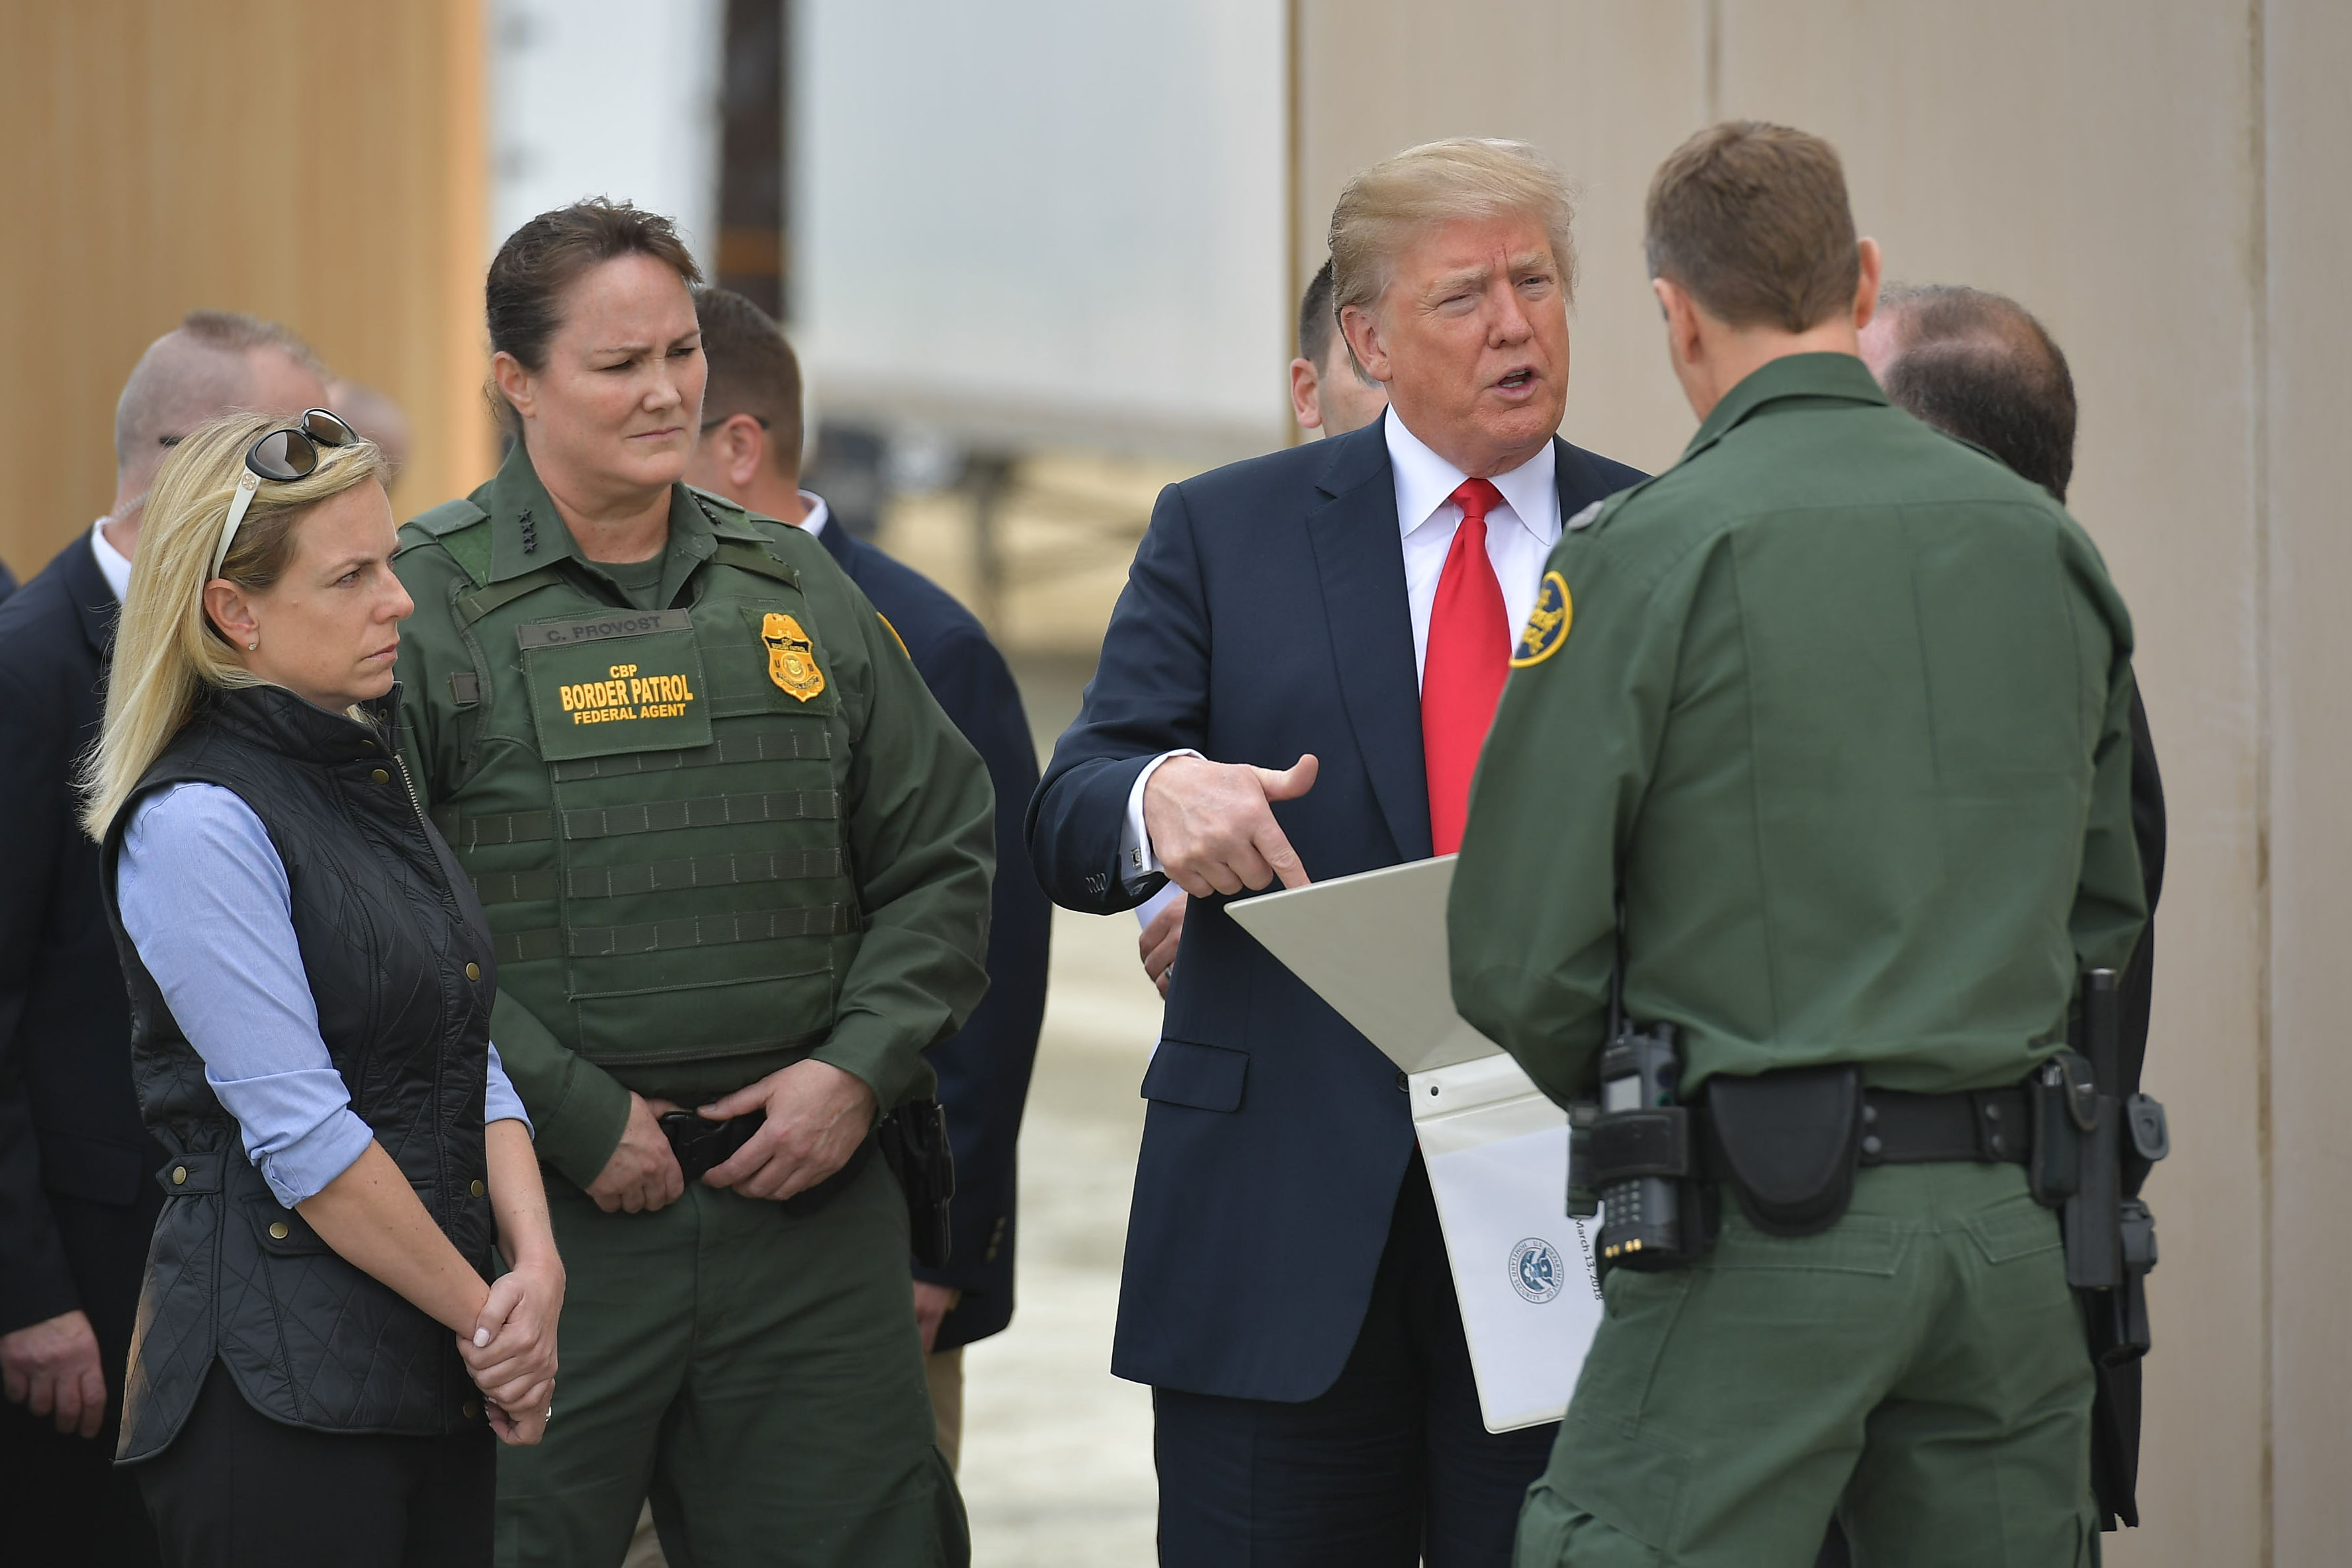 US President Donald Trump is shown border wall prototypes in San Diego, California on March 13, 2018. (Mandel Ngan/AFP/Getty Images)